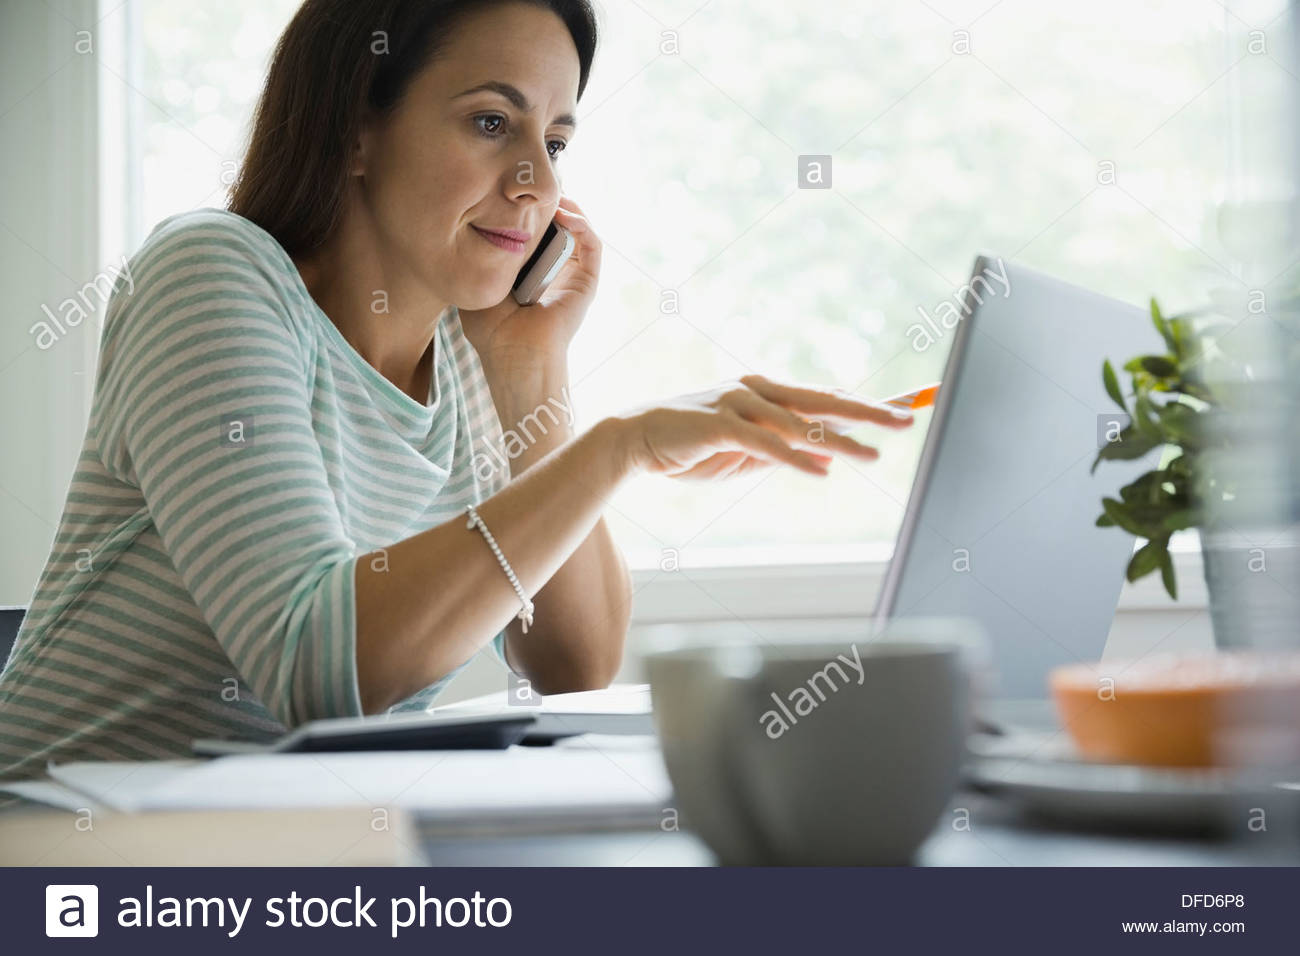 Businesswoman using technologies at desk in home office - Stock Image